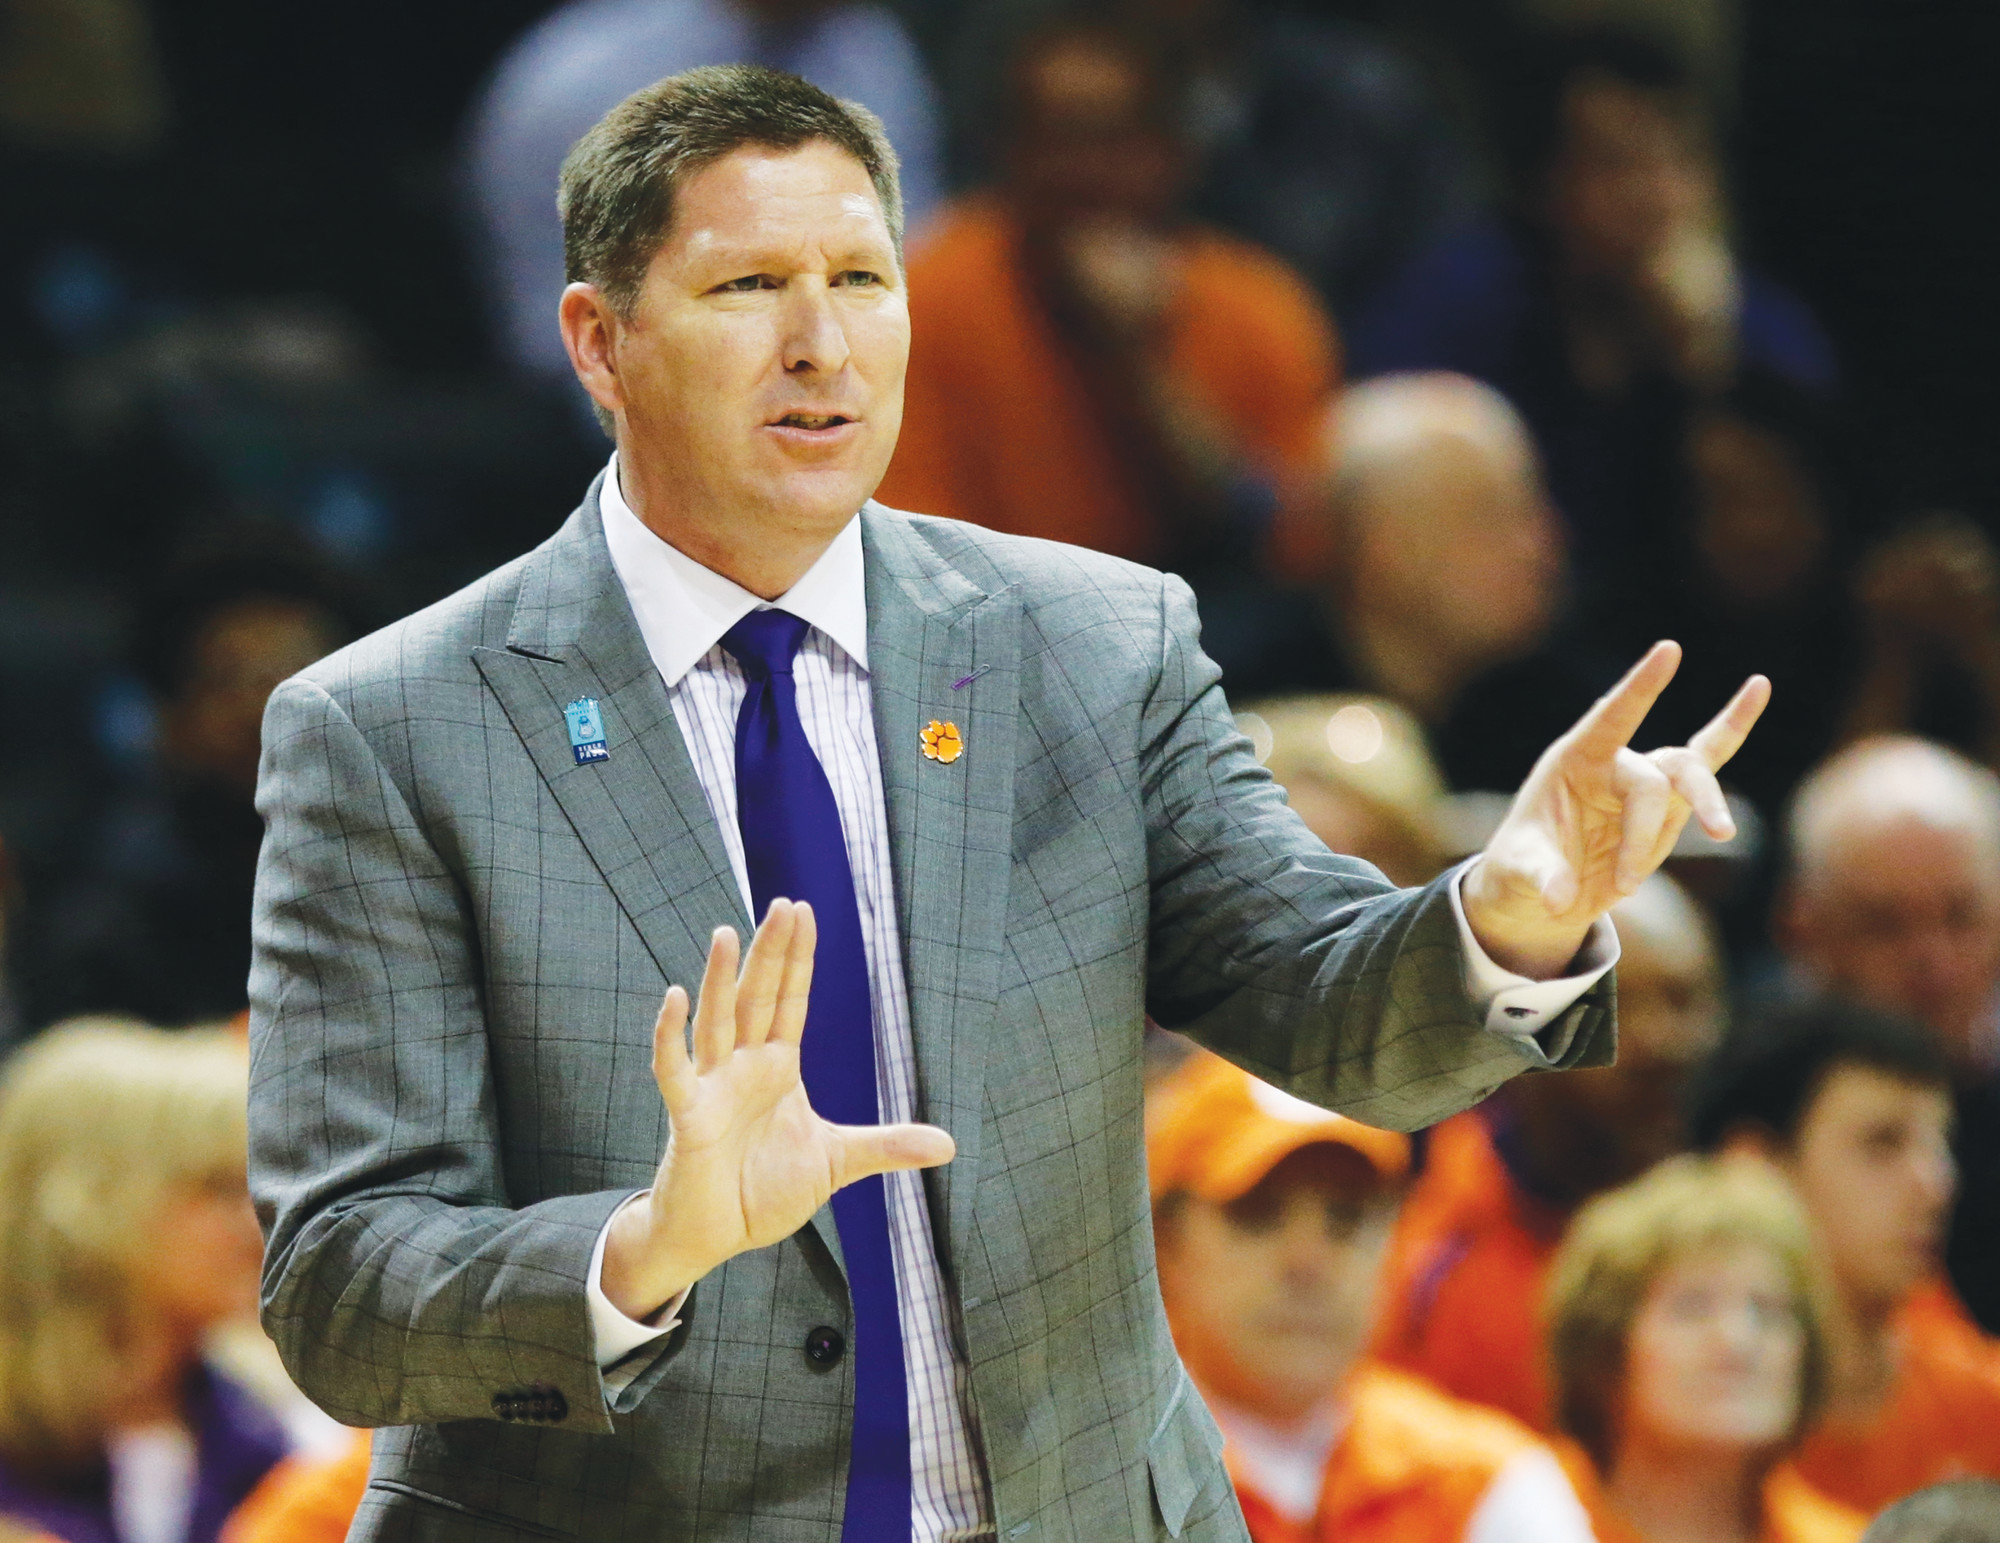 FILE - In this March 8, 2018, file photo, Clemson head coach Brad Brownell directs to his team during the first half of an NCAA college basketball game against Boston College in the quarterfinal round of the Atlantic Coast Conference tournament, in New York. Brownell has received a new six-year contract that will pay him $15 million through 2024. The school's compensation committee of the board of trustees approved the deal Thursday, July 19, 2018, for Brownell, who reached the round of the 16 i